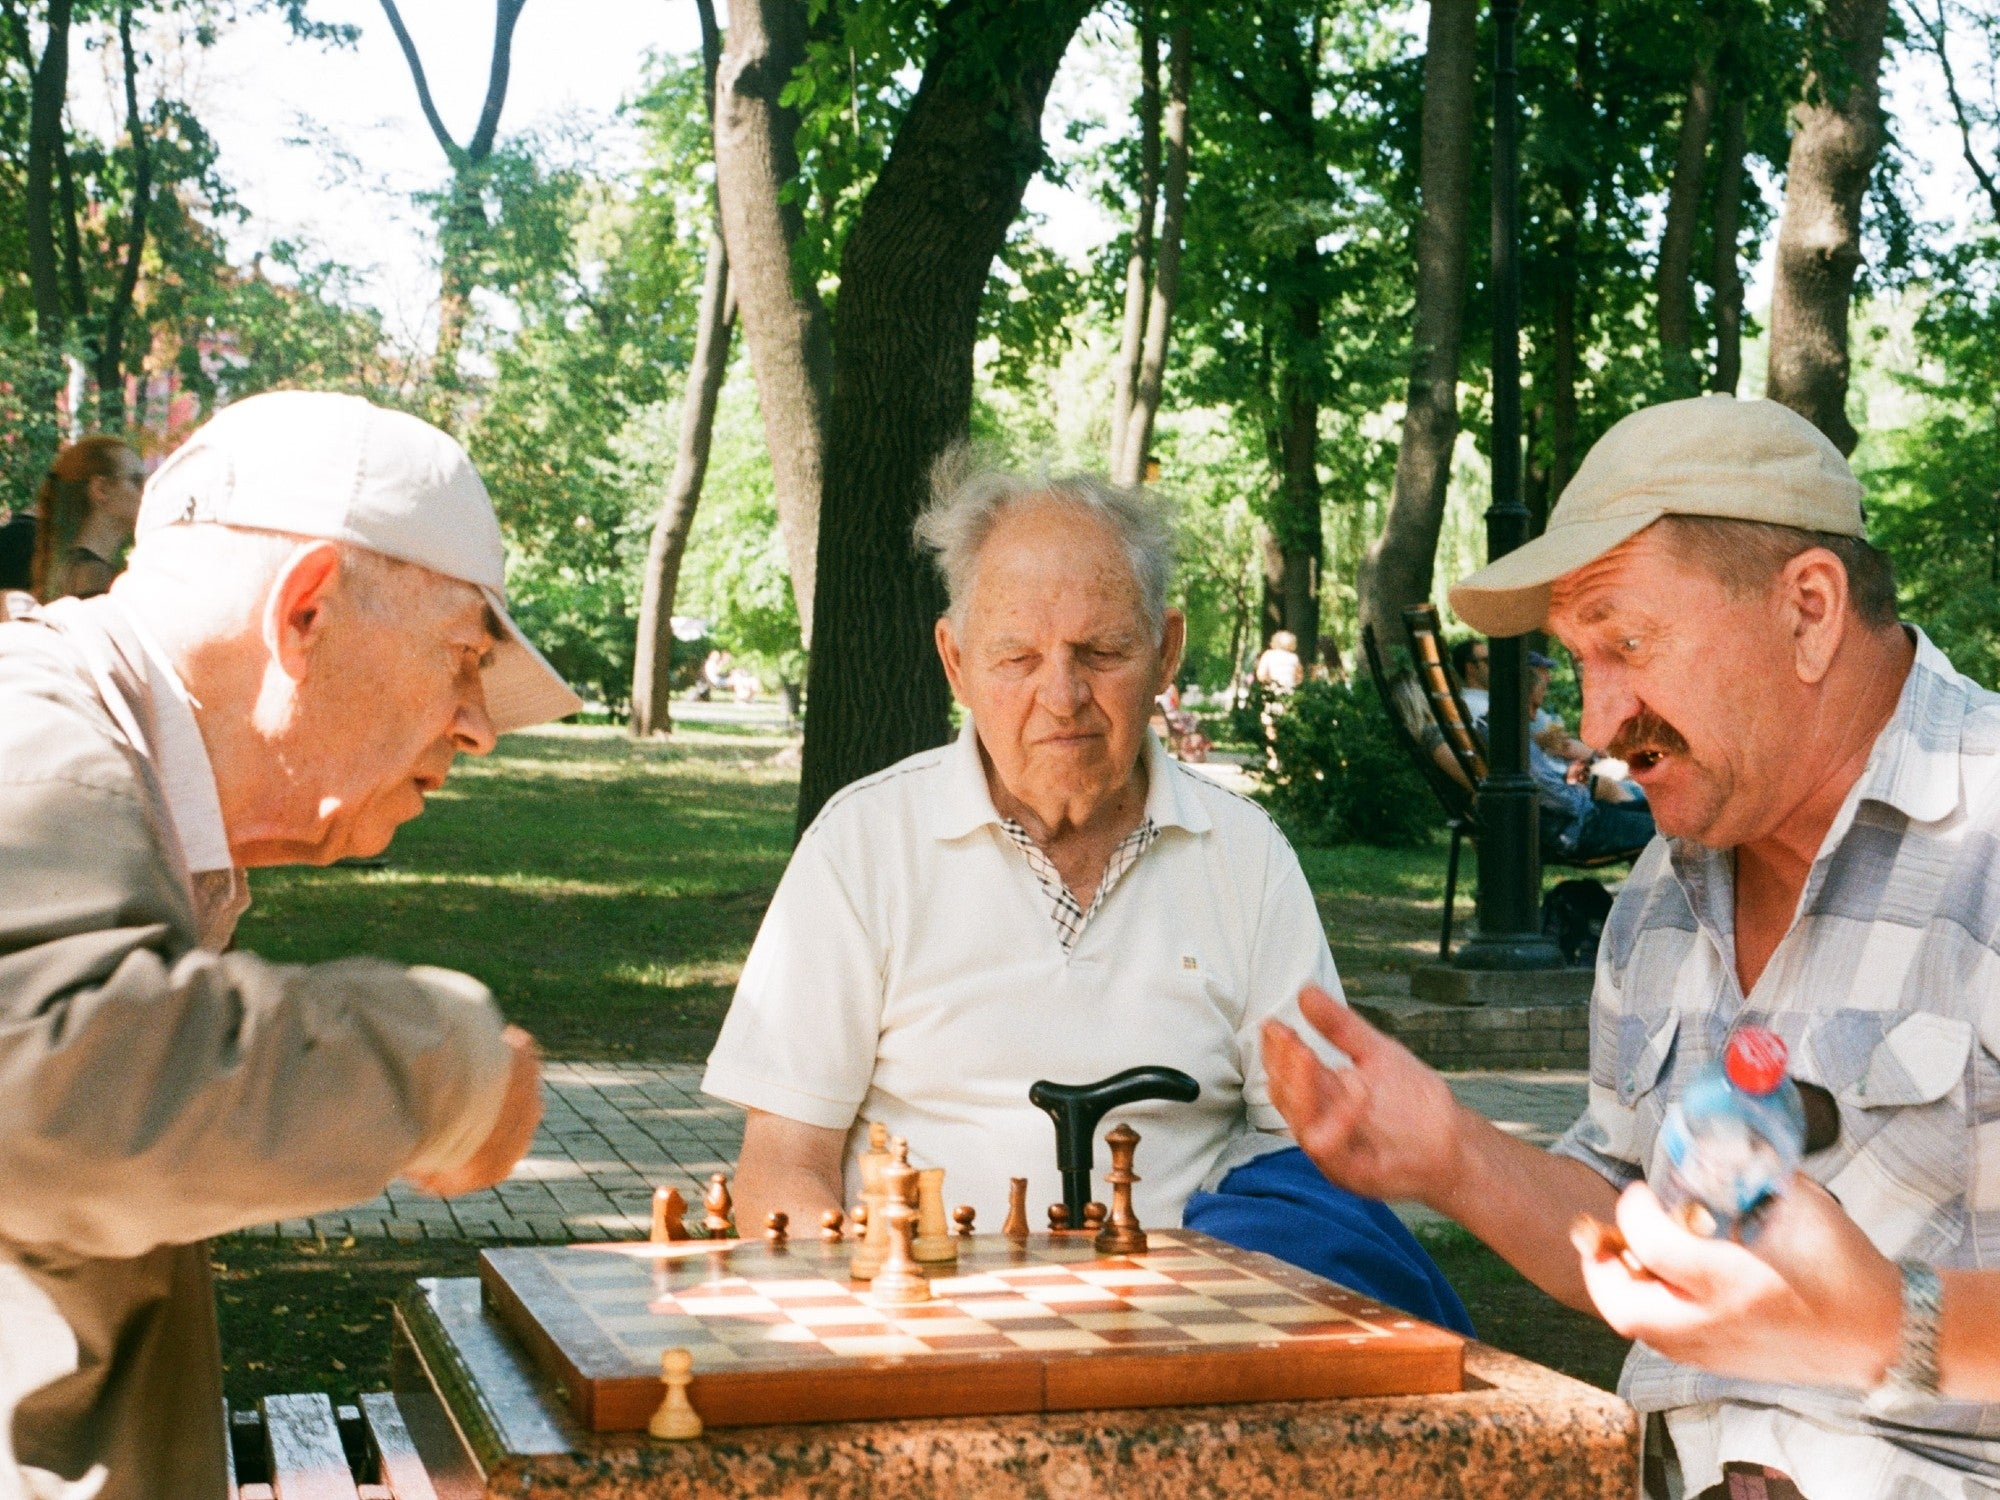 older adult men playing chess together